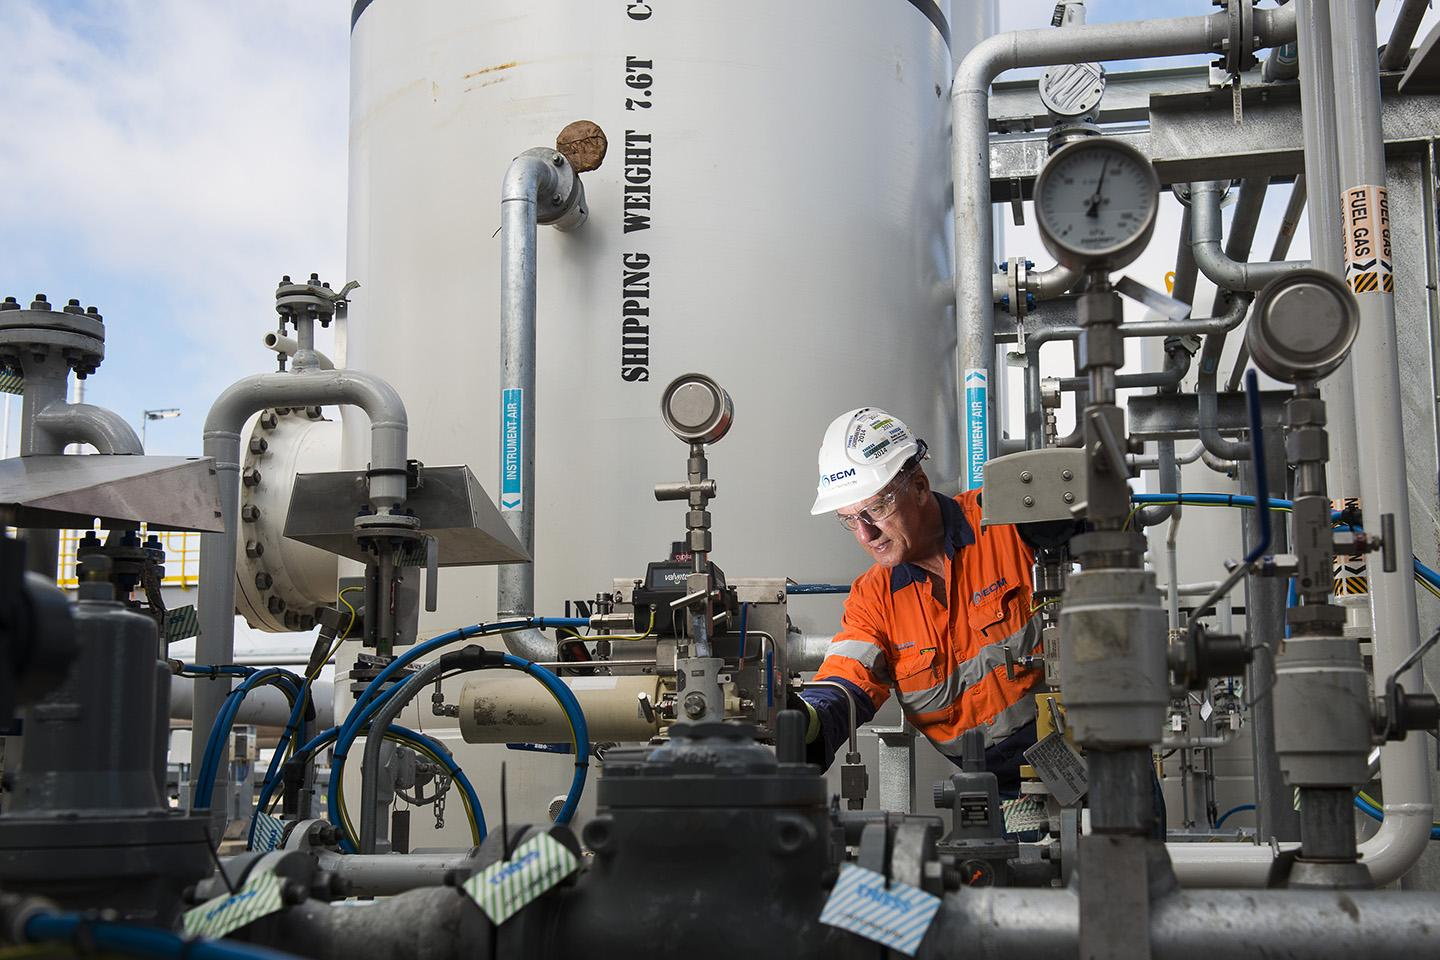 EC&M secures $130m of contracts